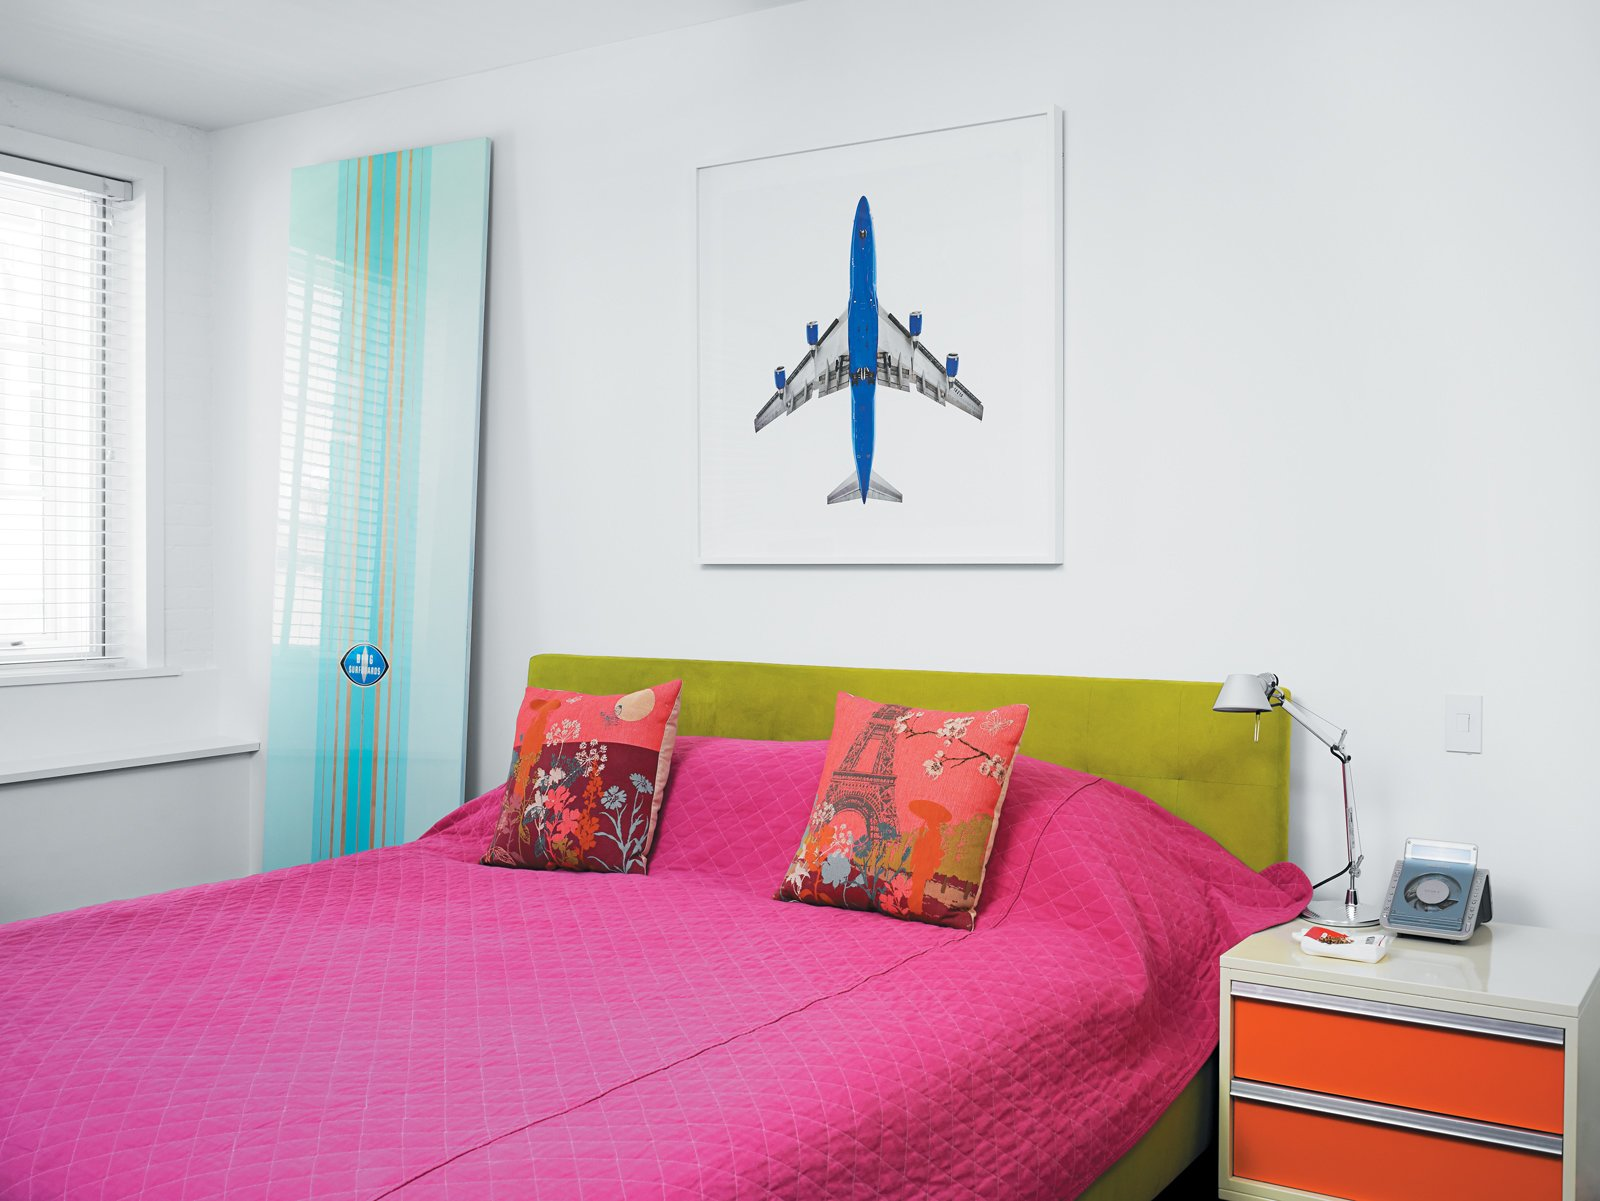 Artist Peter Dayton's glossy panels recall surfboards and reveal references to color-field masters like Kenneth Noland. Dine shows Dayton's work at the MaD Wainscott gallery he co-owns with business partner Scott Murphy. Tagged: Bedroom, Dresser, and Bed. Fine Dine-ing - Photo 12 of 12